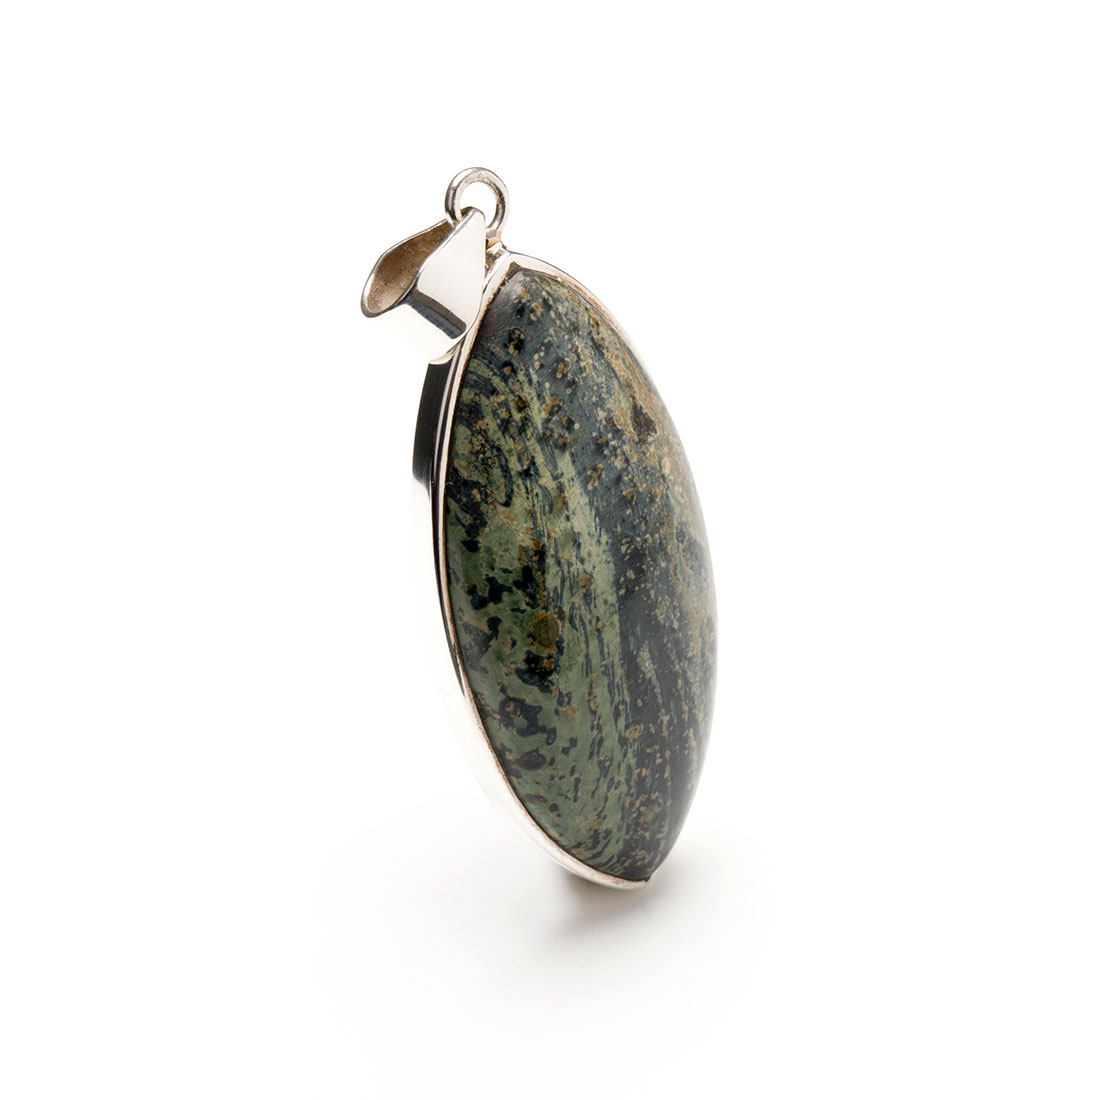 Kambaba jasper gemstone crafted as a ladies pendant in a sterling silver setting